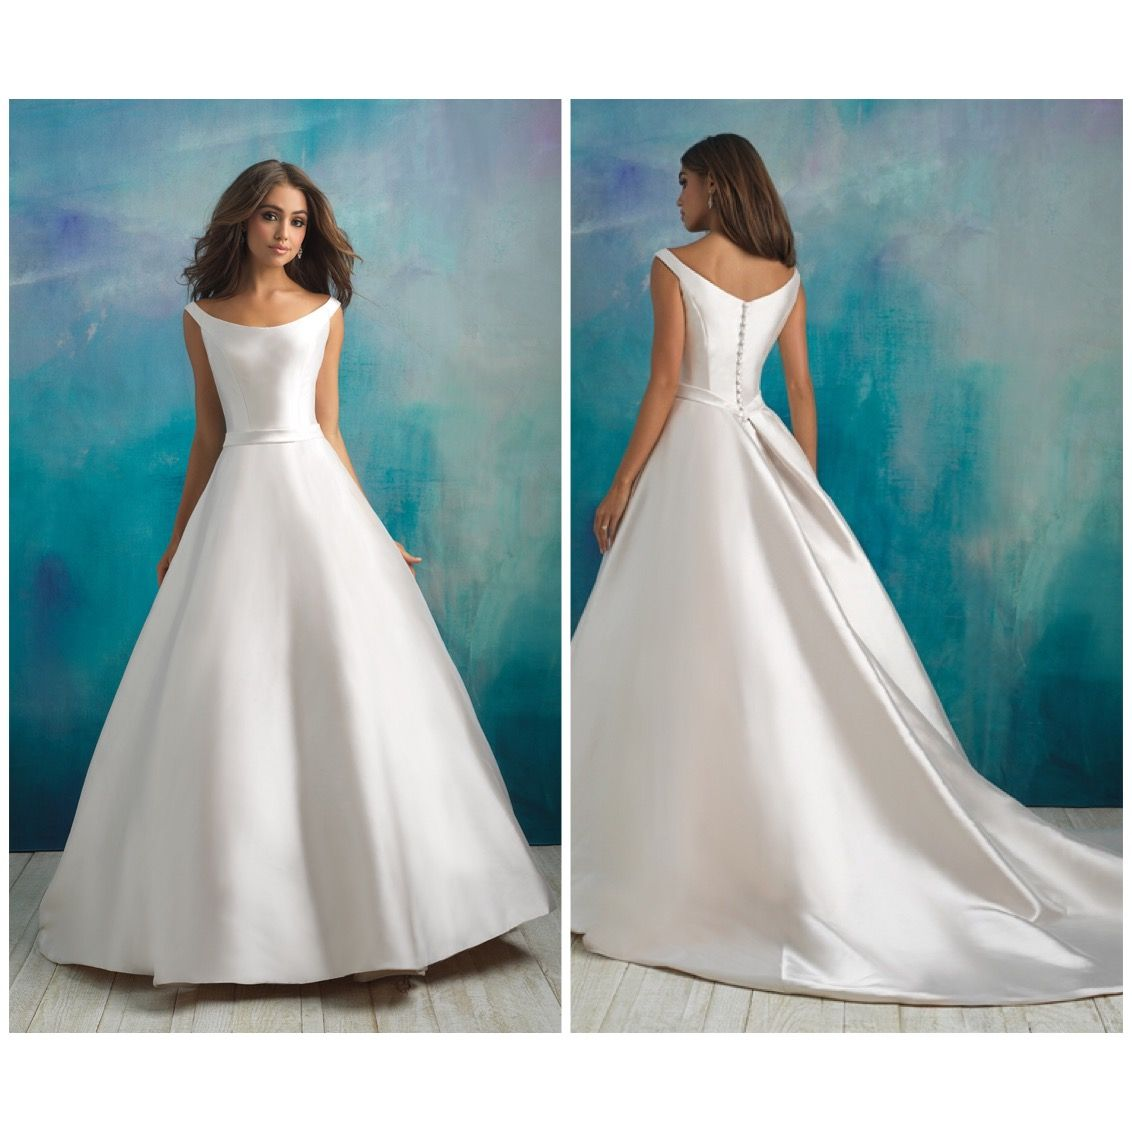 Allure - Size 18 in store | Plus Size Wedding Gowns (All Designers ...